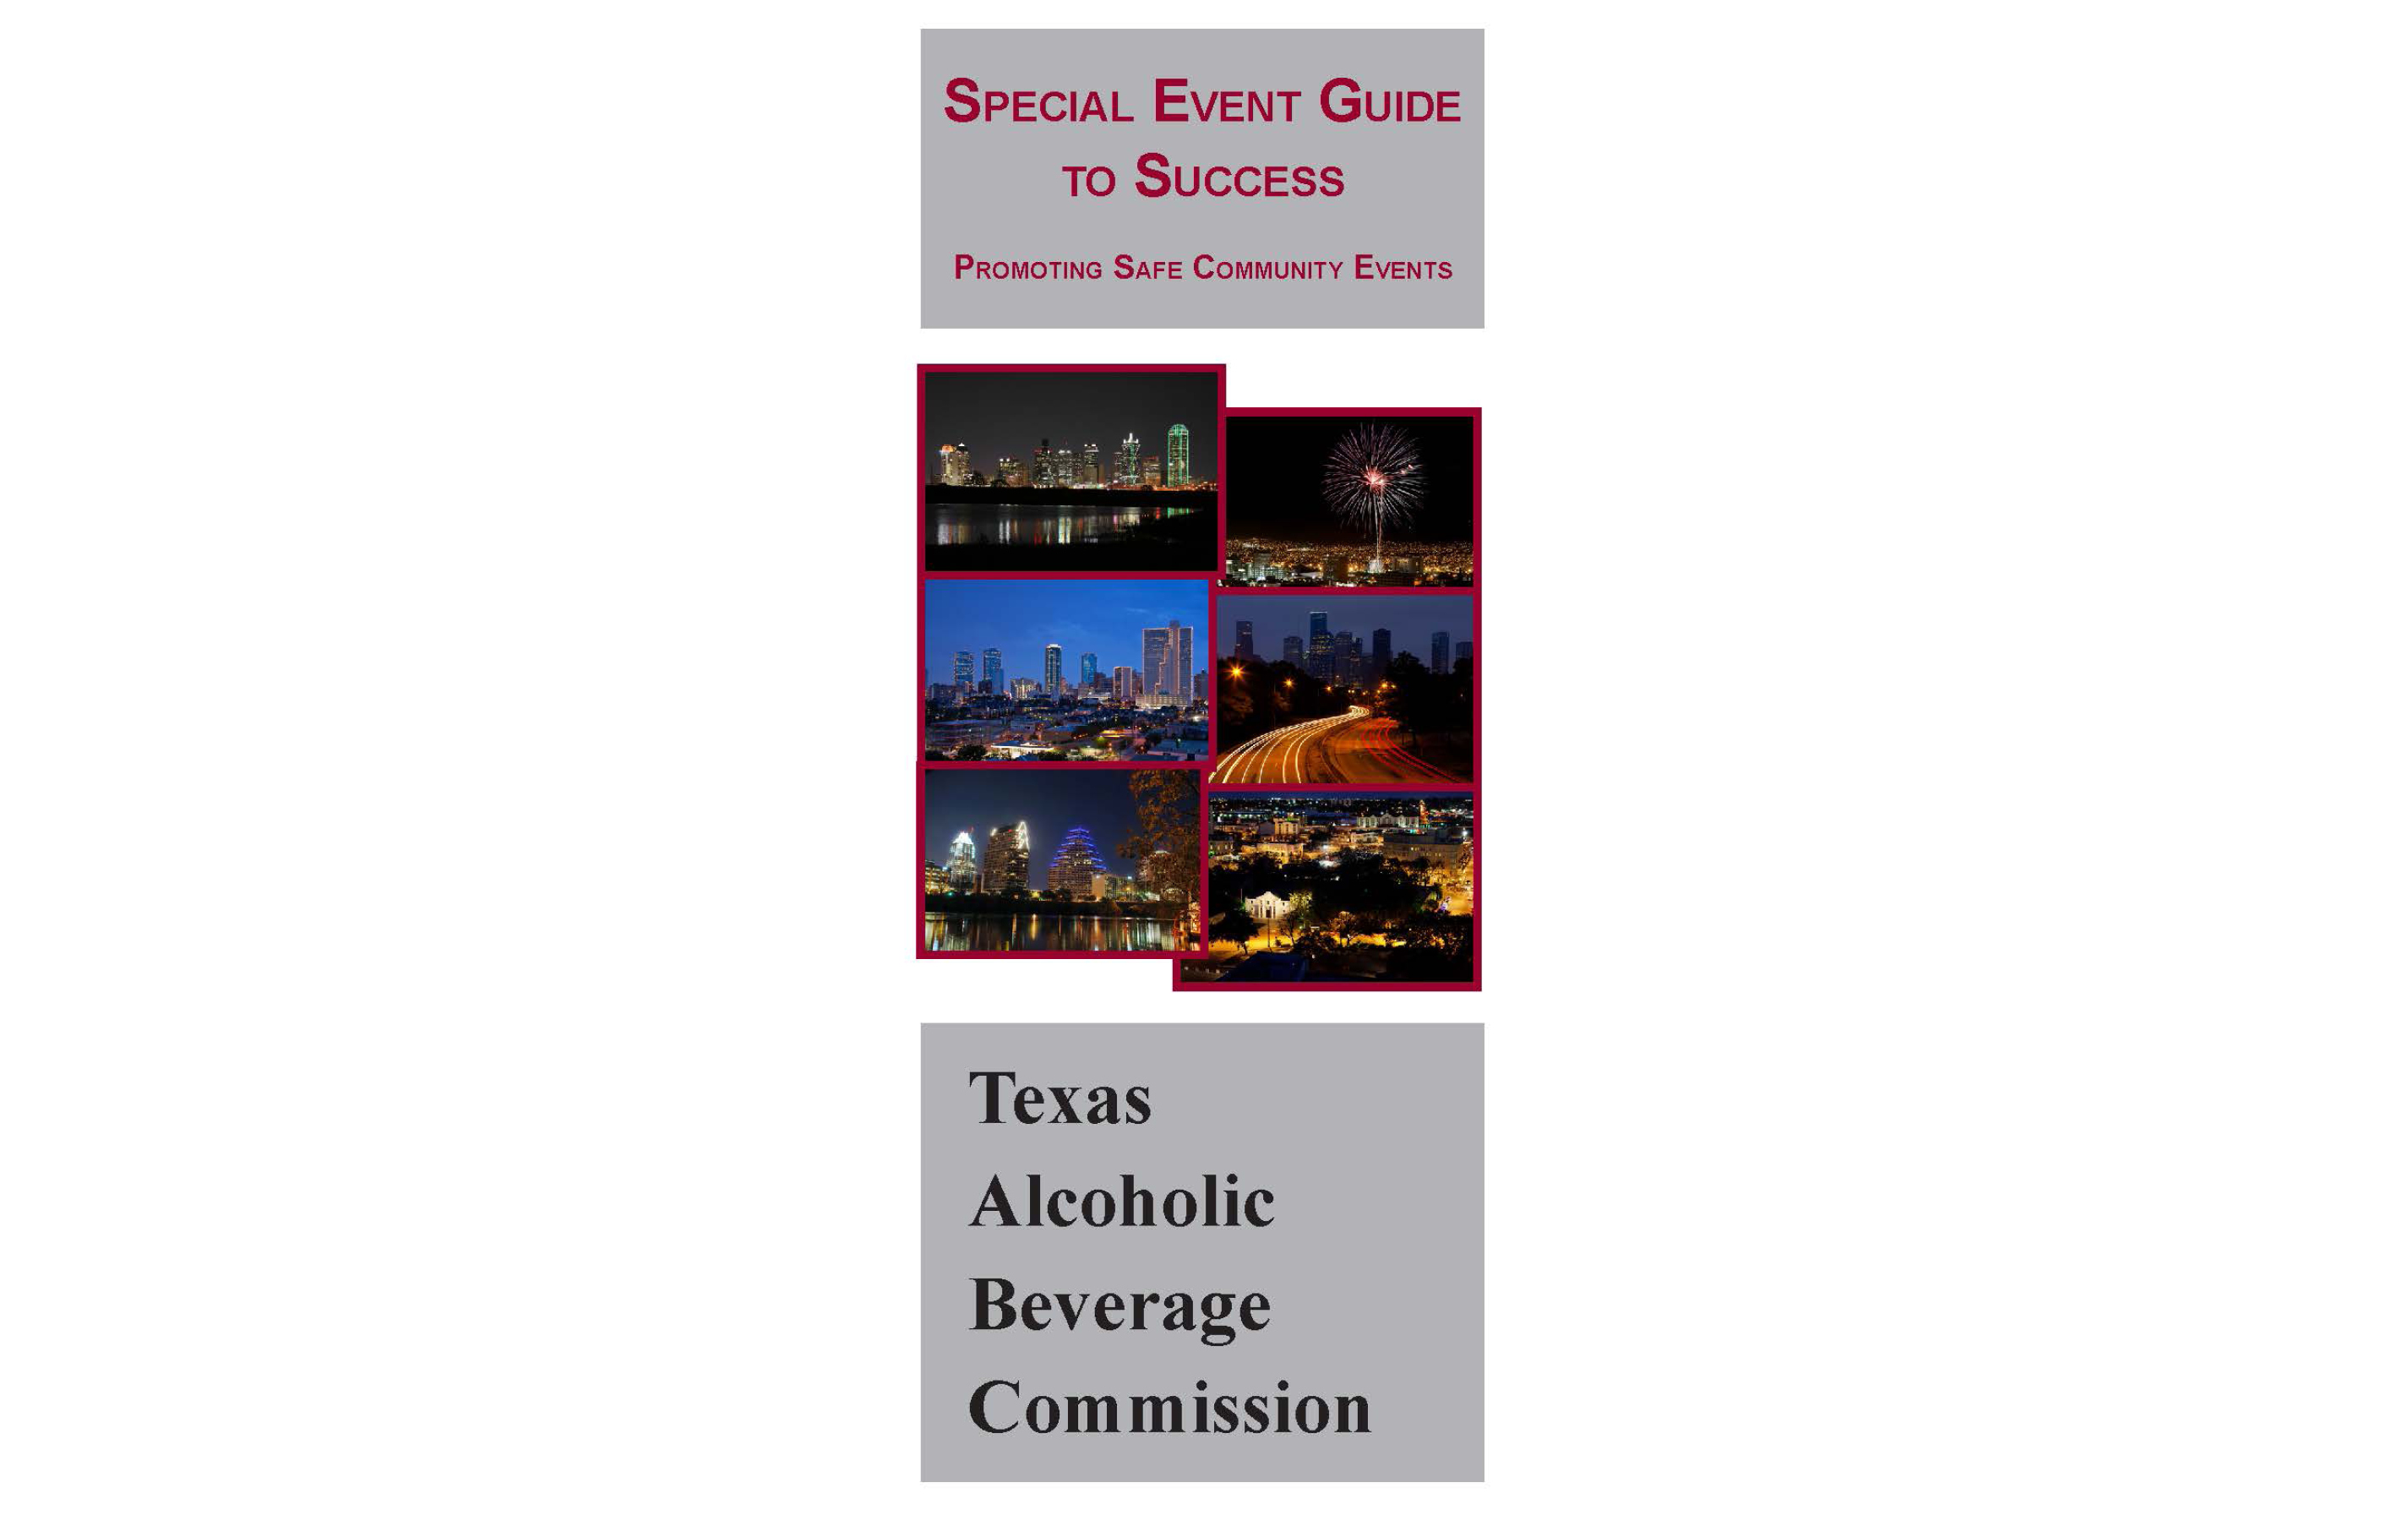 Special Events Guide to Success Brochure